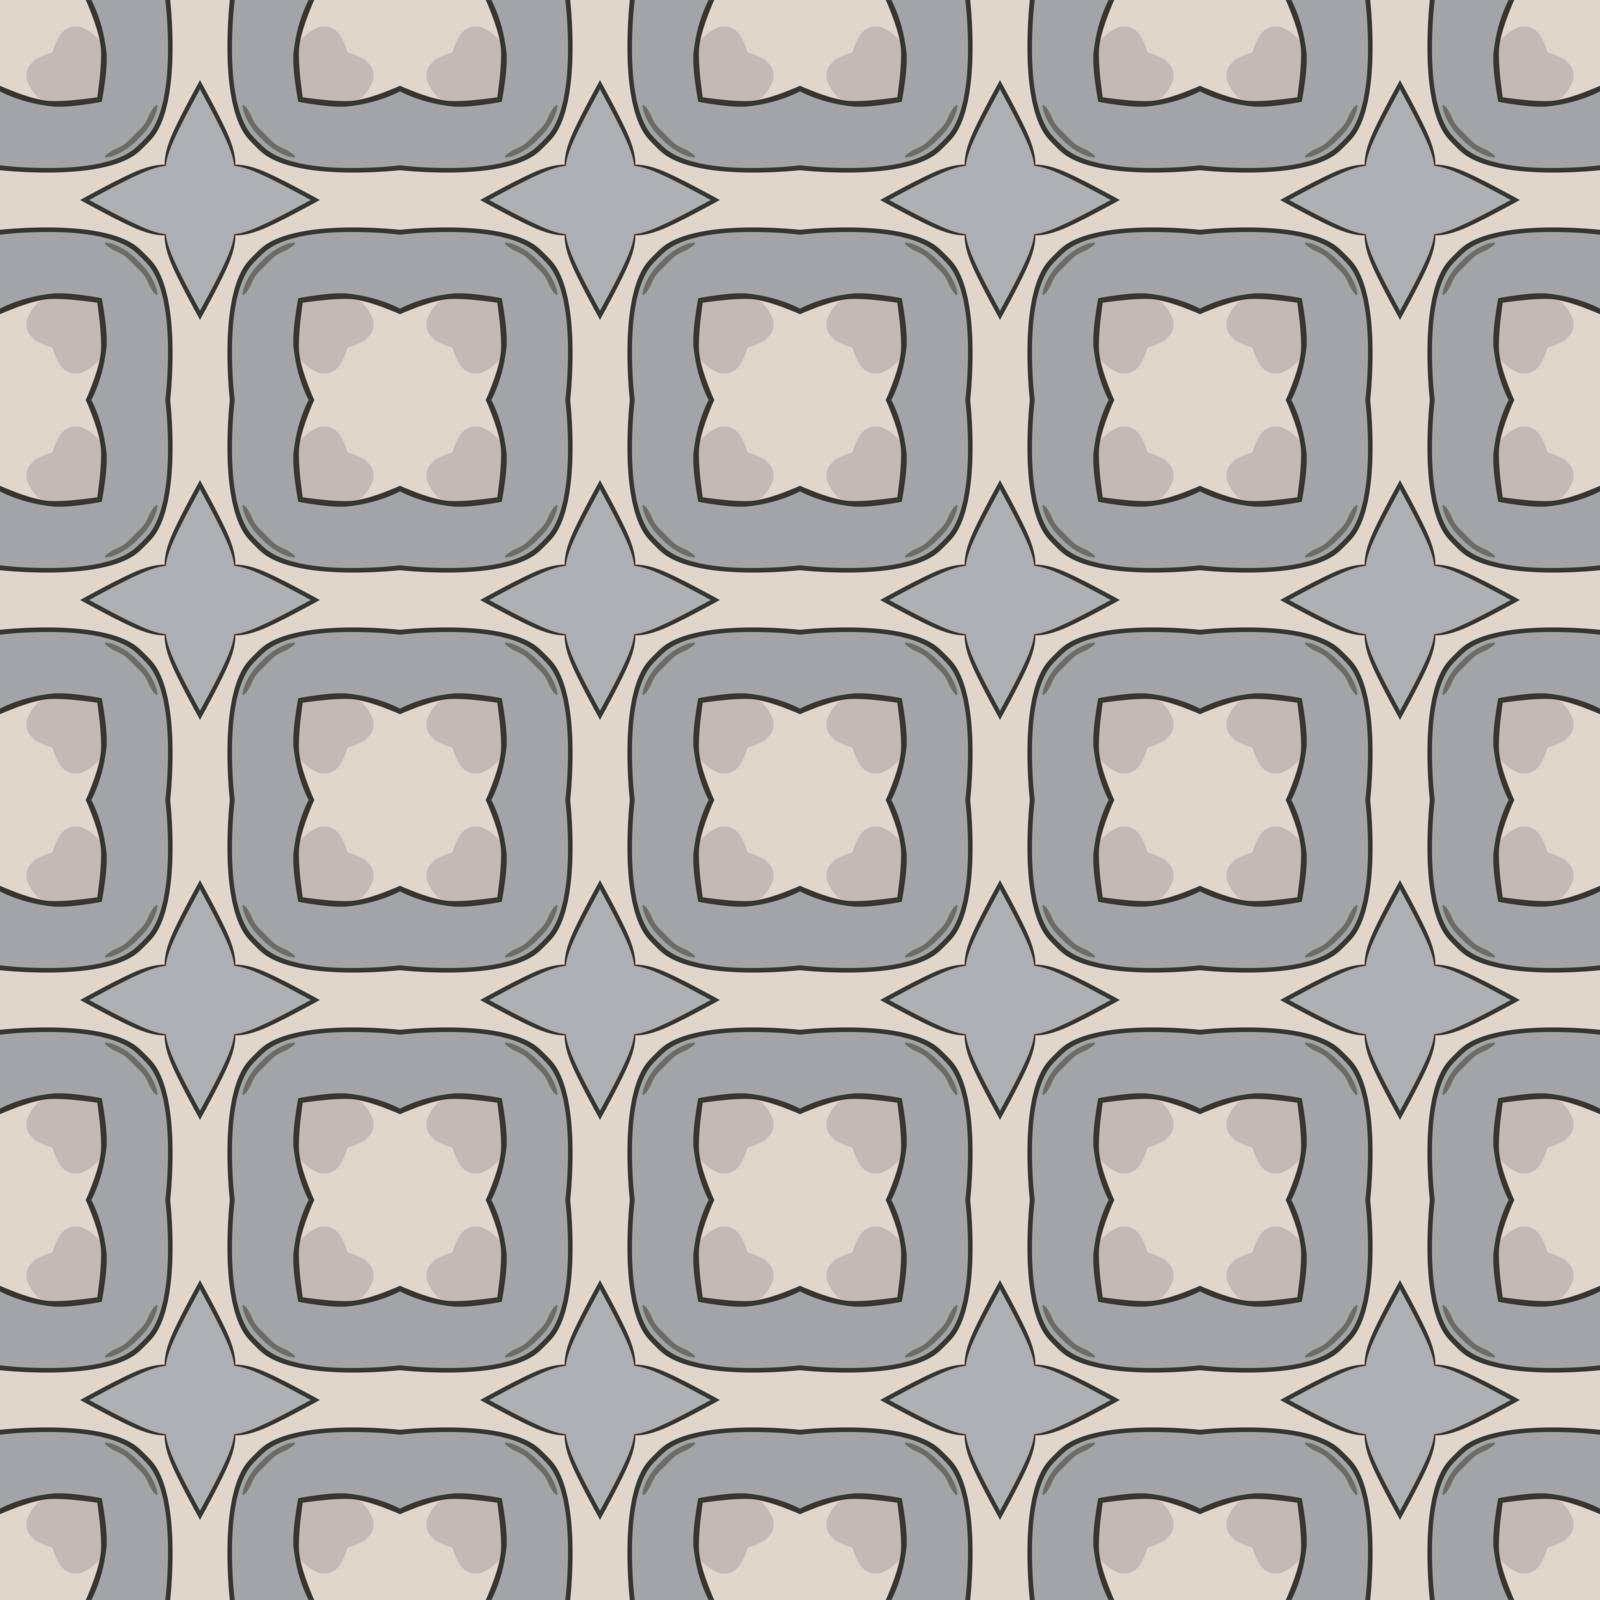 Seamless illustrated pattern made of abstract elements in beige, gray and light blue